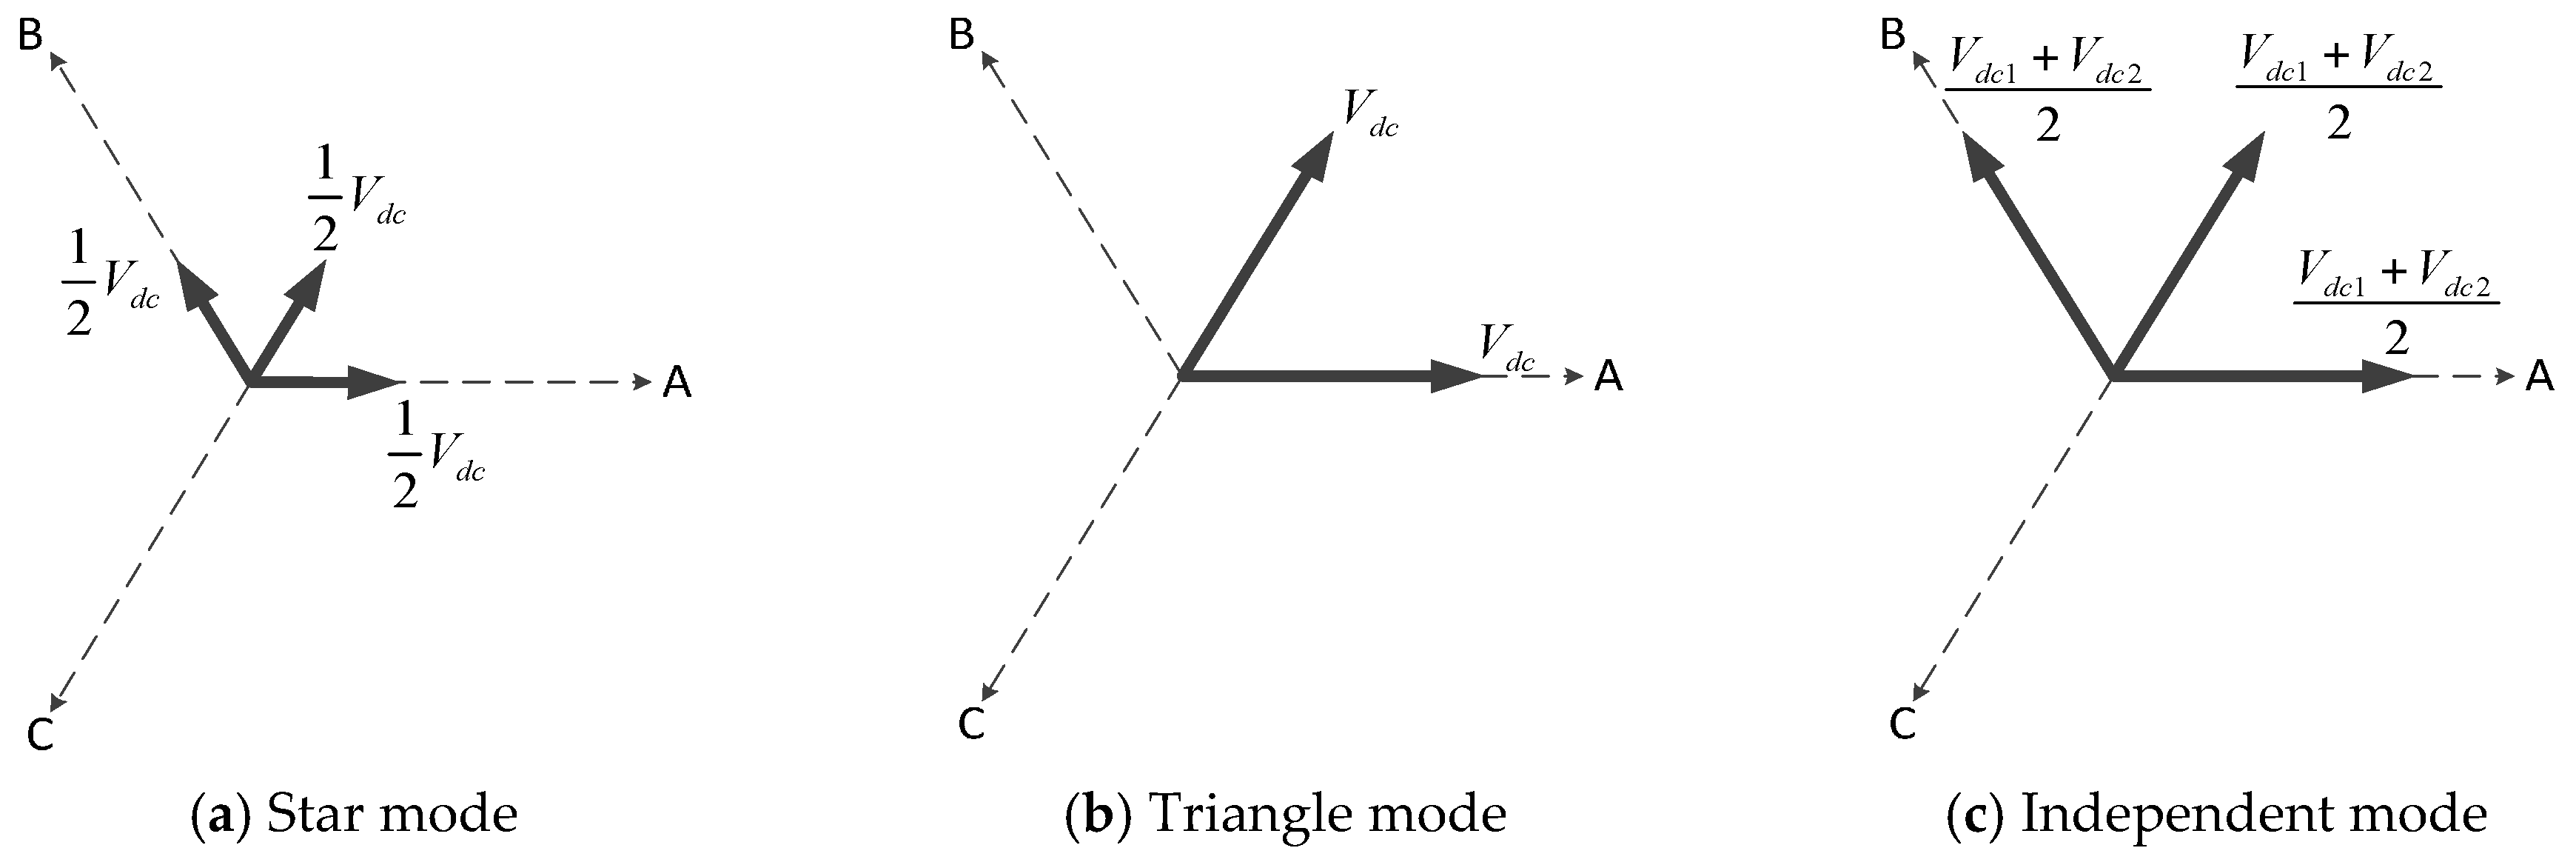 Energies | Free Full-Text | Research on Control Strategies of an ...